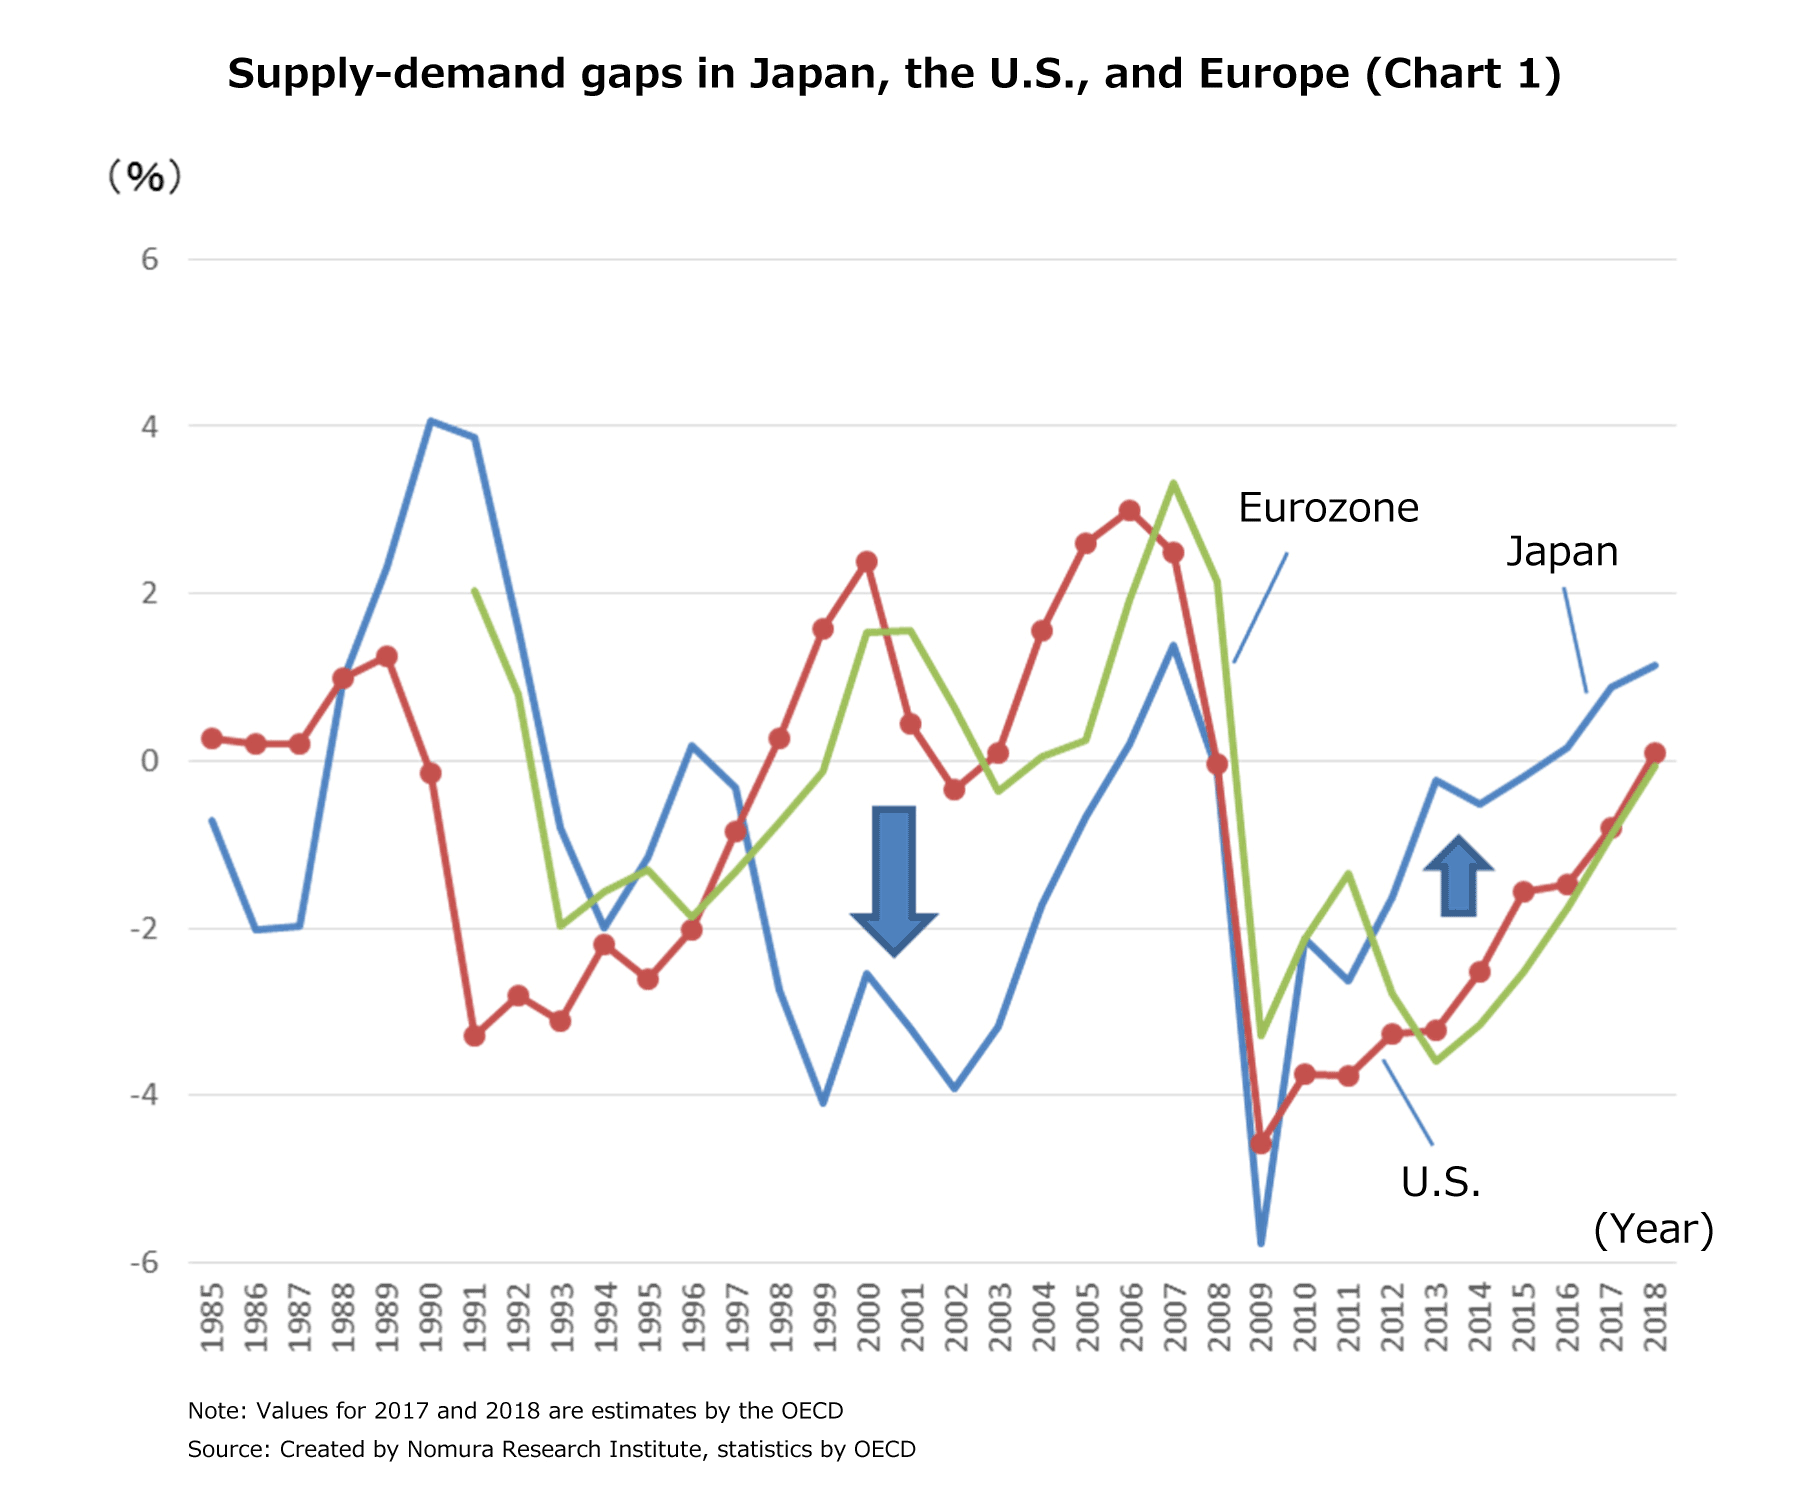 Supply-demand gaps in Japan, the U.S., and Europe (Chart 1)